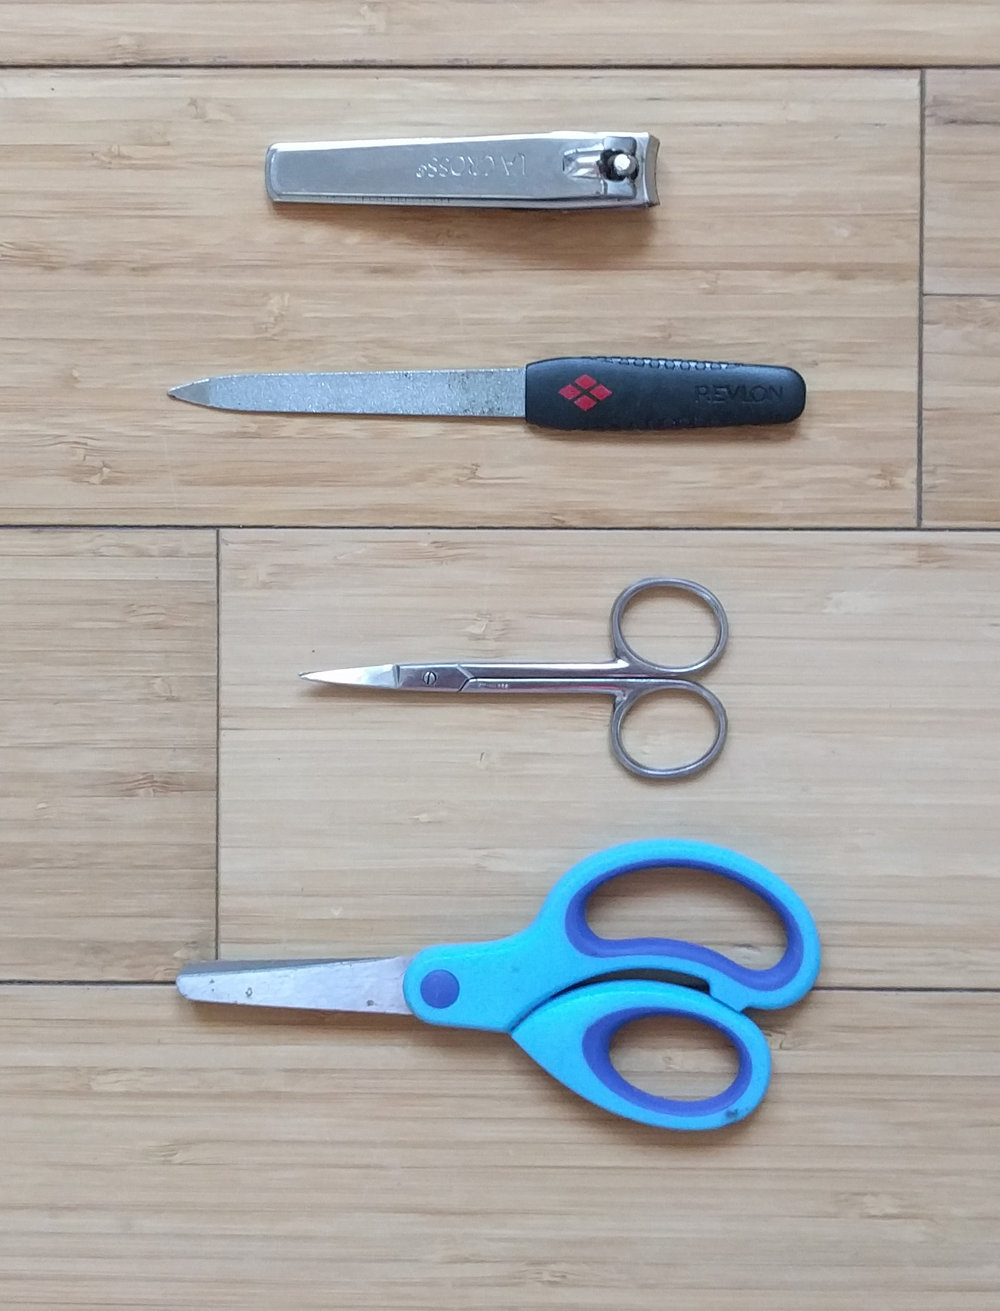 Scissors and nail clipprs